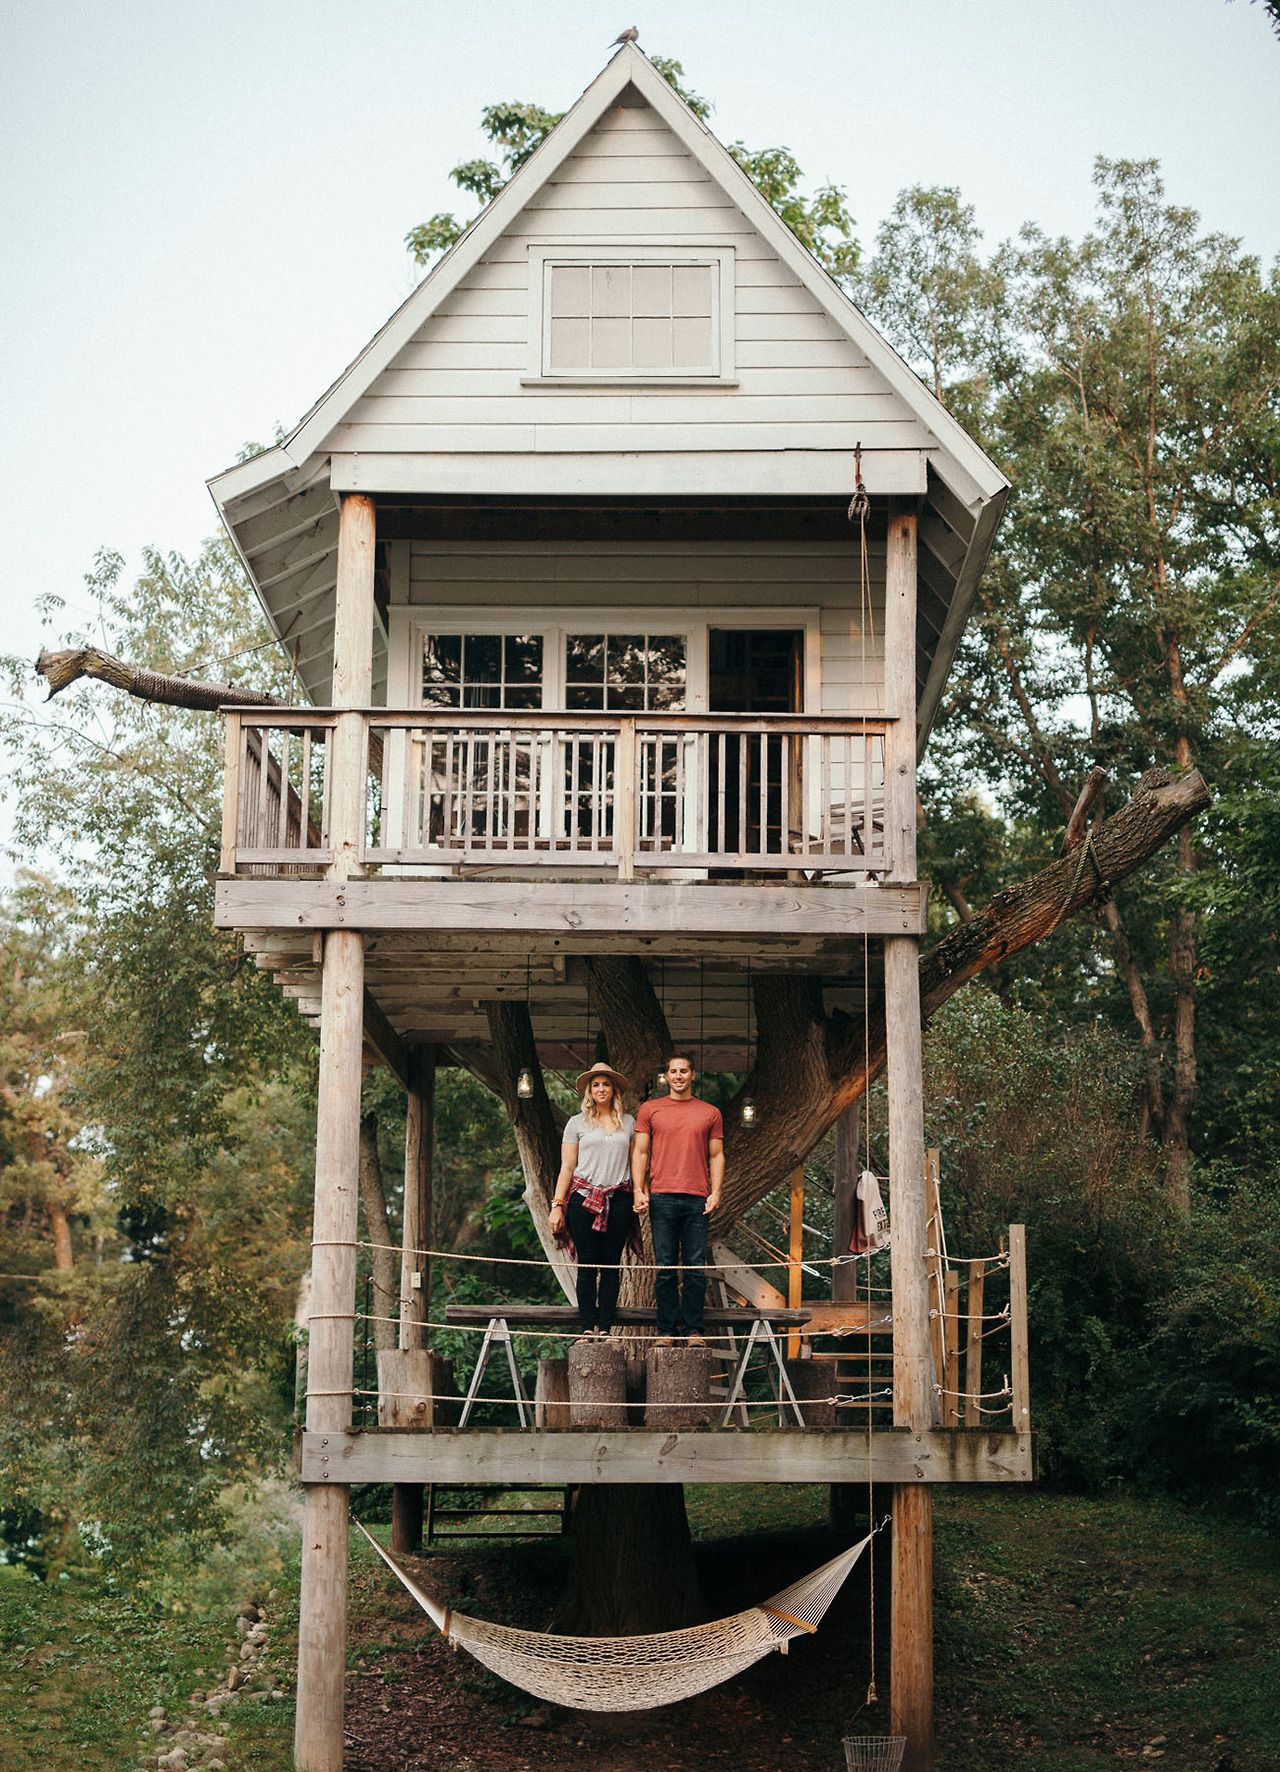 From treehouses in the ancient Costa Rican rainforests to treetop getaways surrounded by South African wildlife, we're taking the climb up to 28 of the world's most amazing treehouses. | Photo: Cassie Rosch